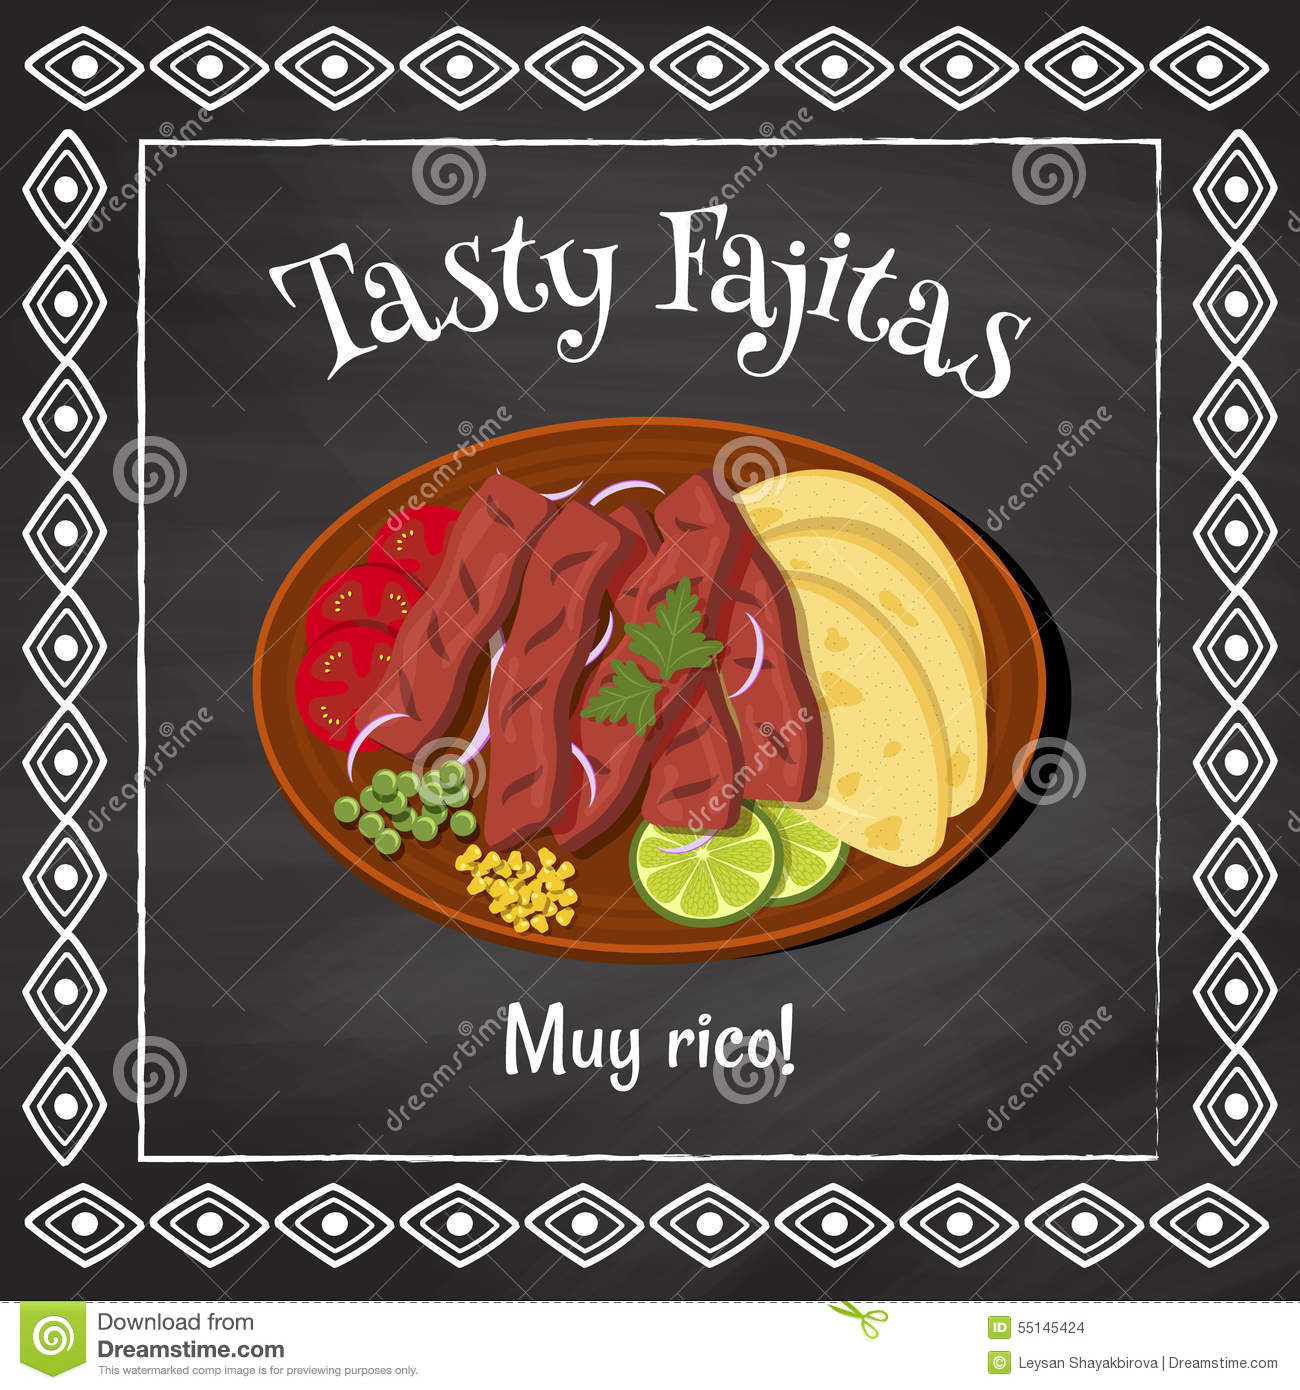 how to say very tasty in spanish